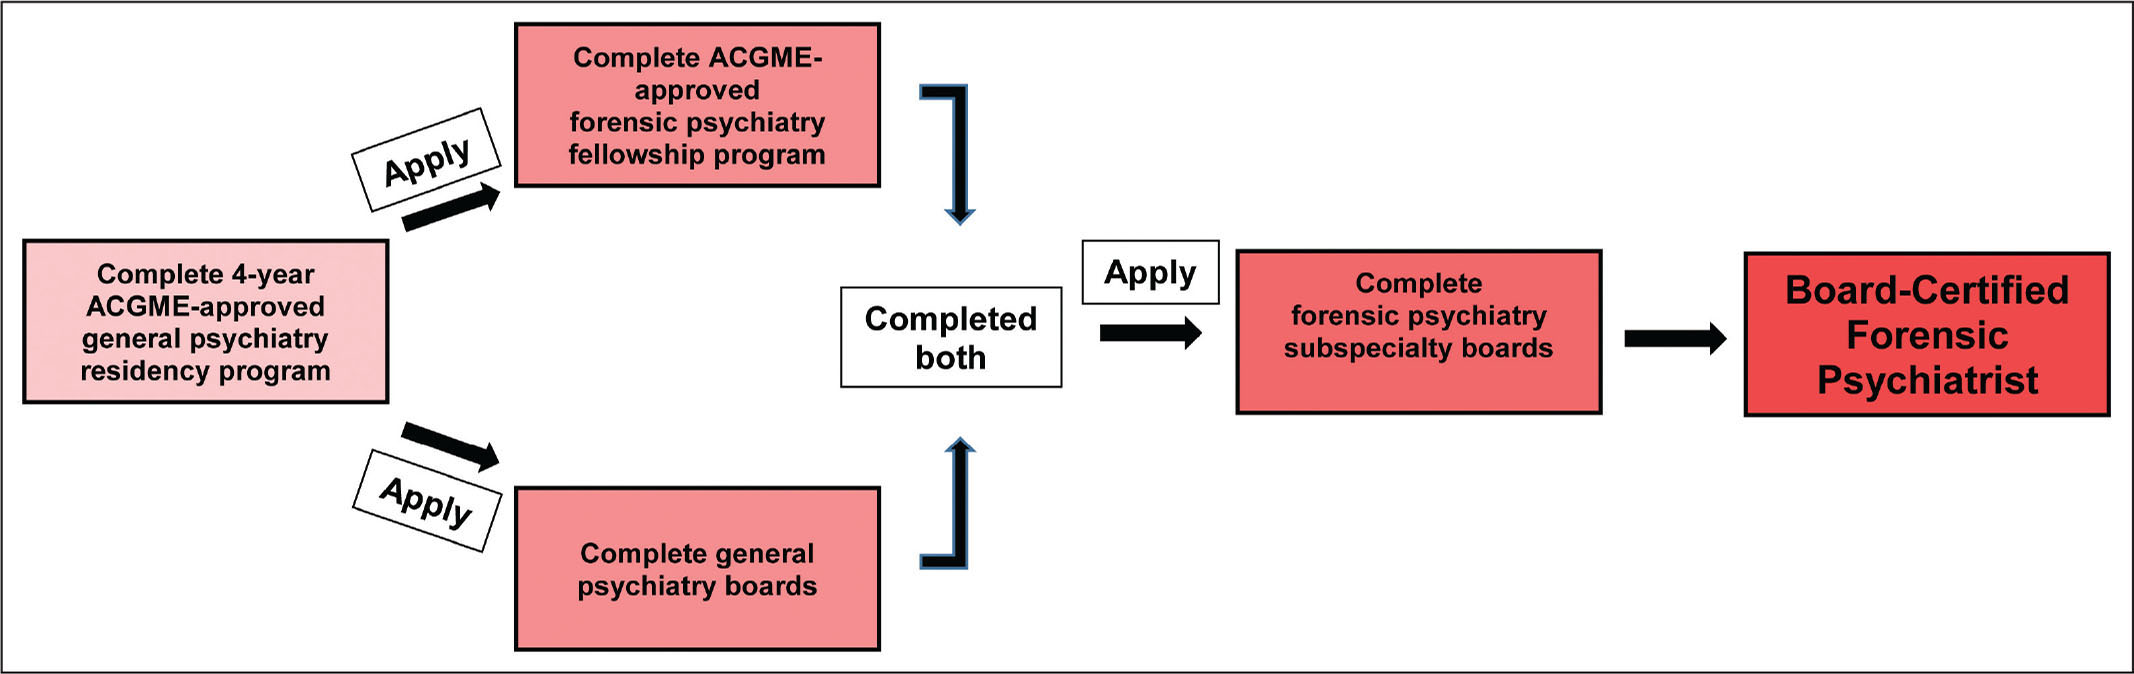 Requirements to become a board-certified forensic psychiatrist. ACGME, Accredited Council for Graduate Medical Education.